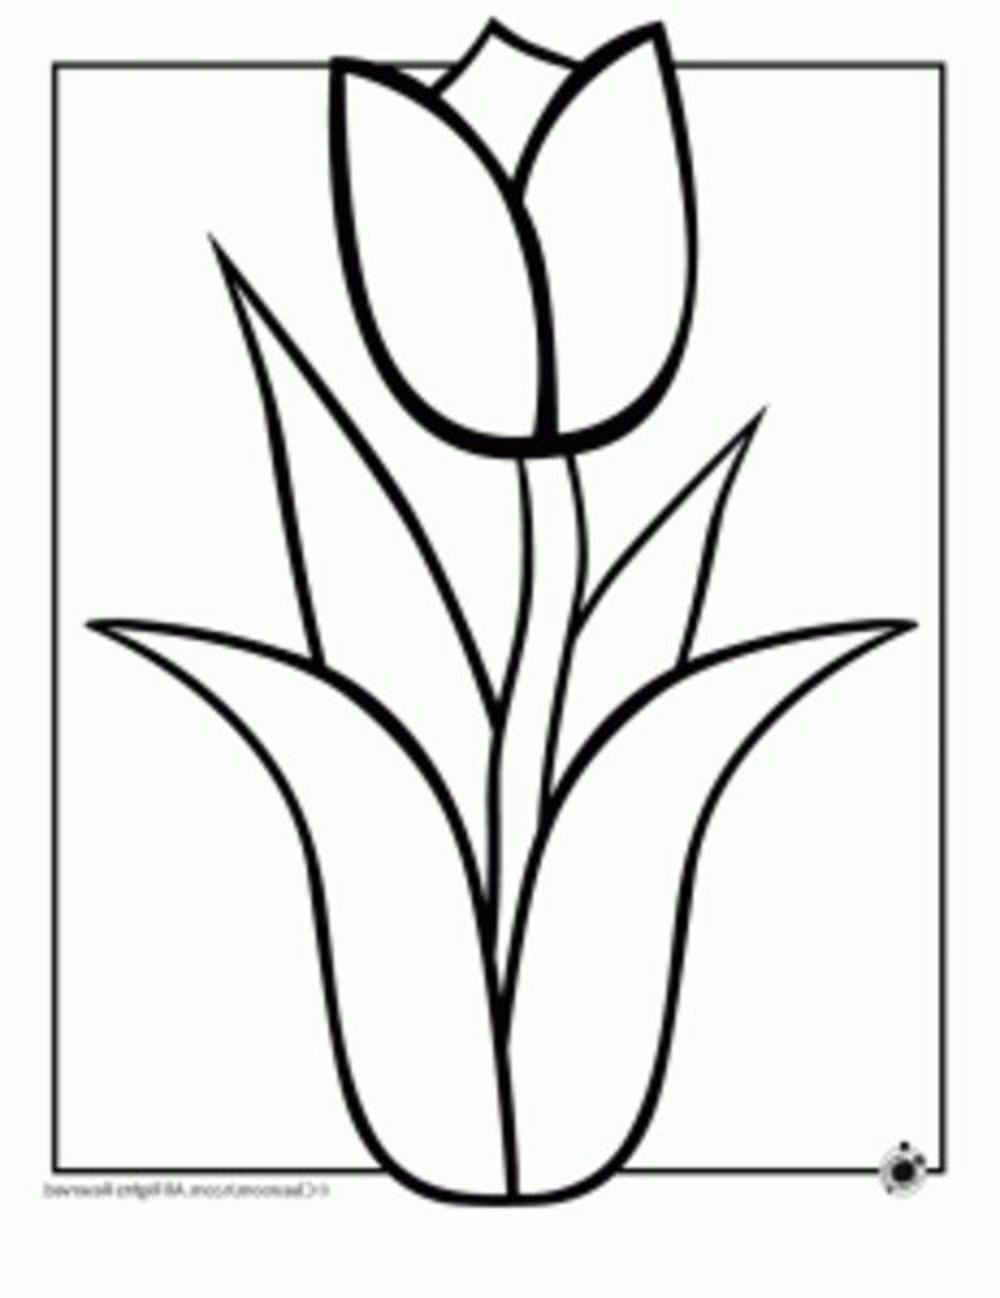 flower mandala coloring pages - Printable Kids Colouring Pages